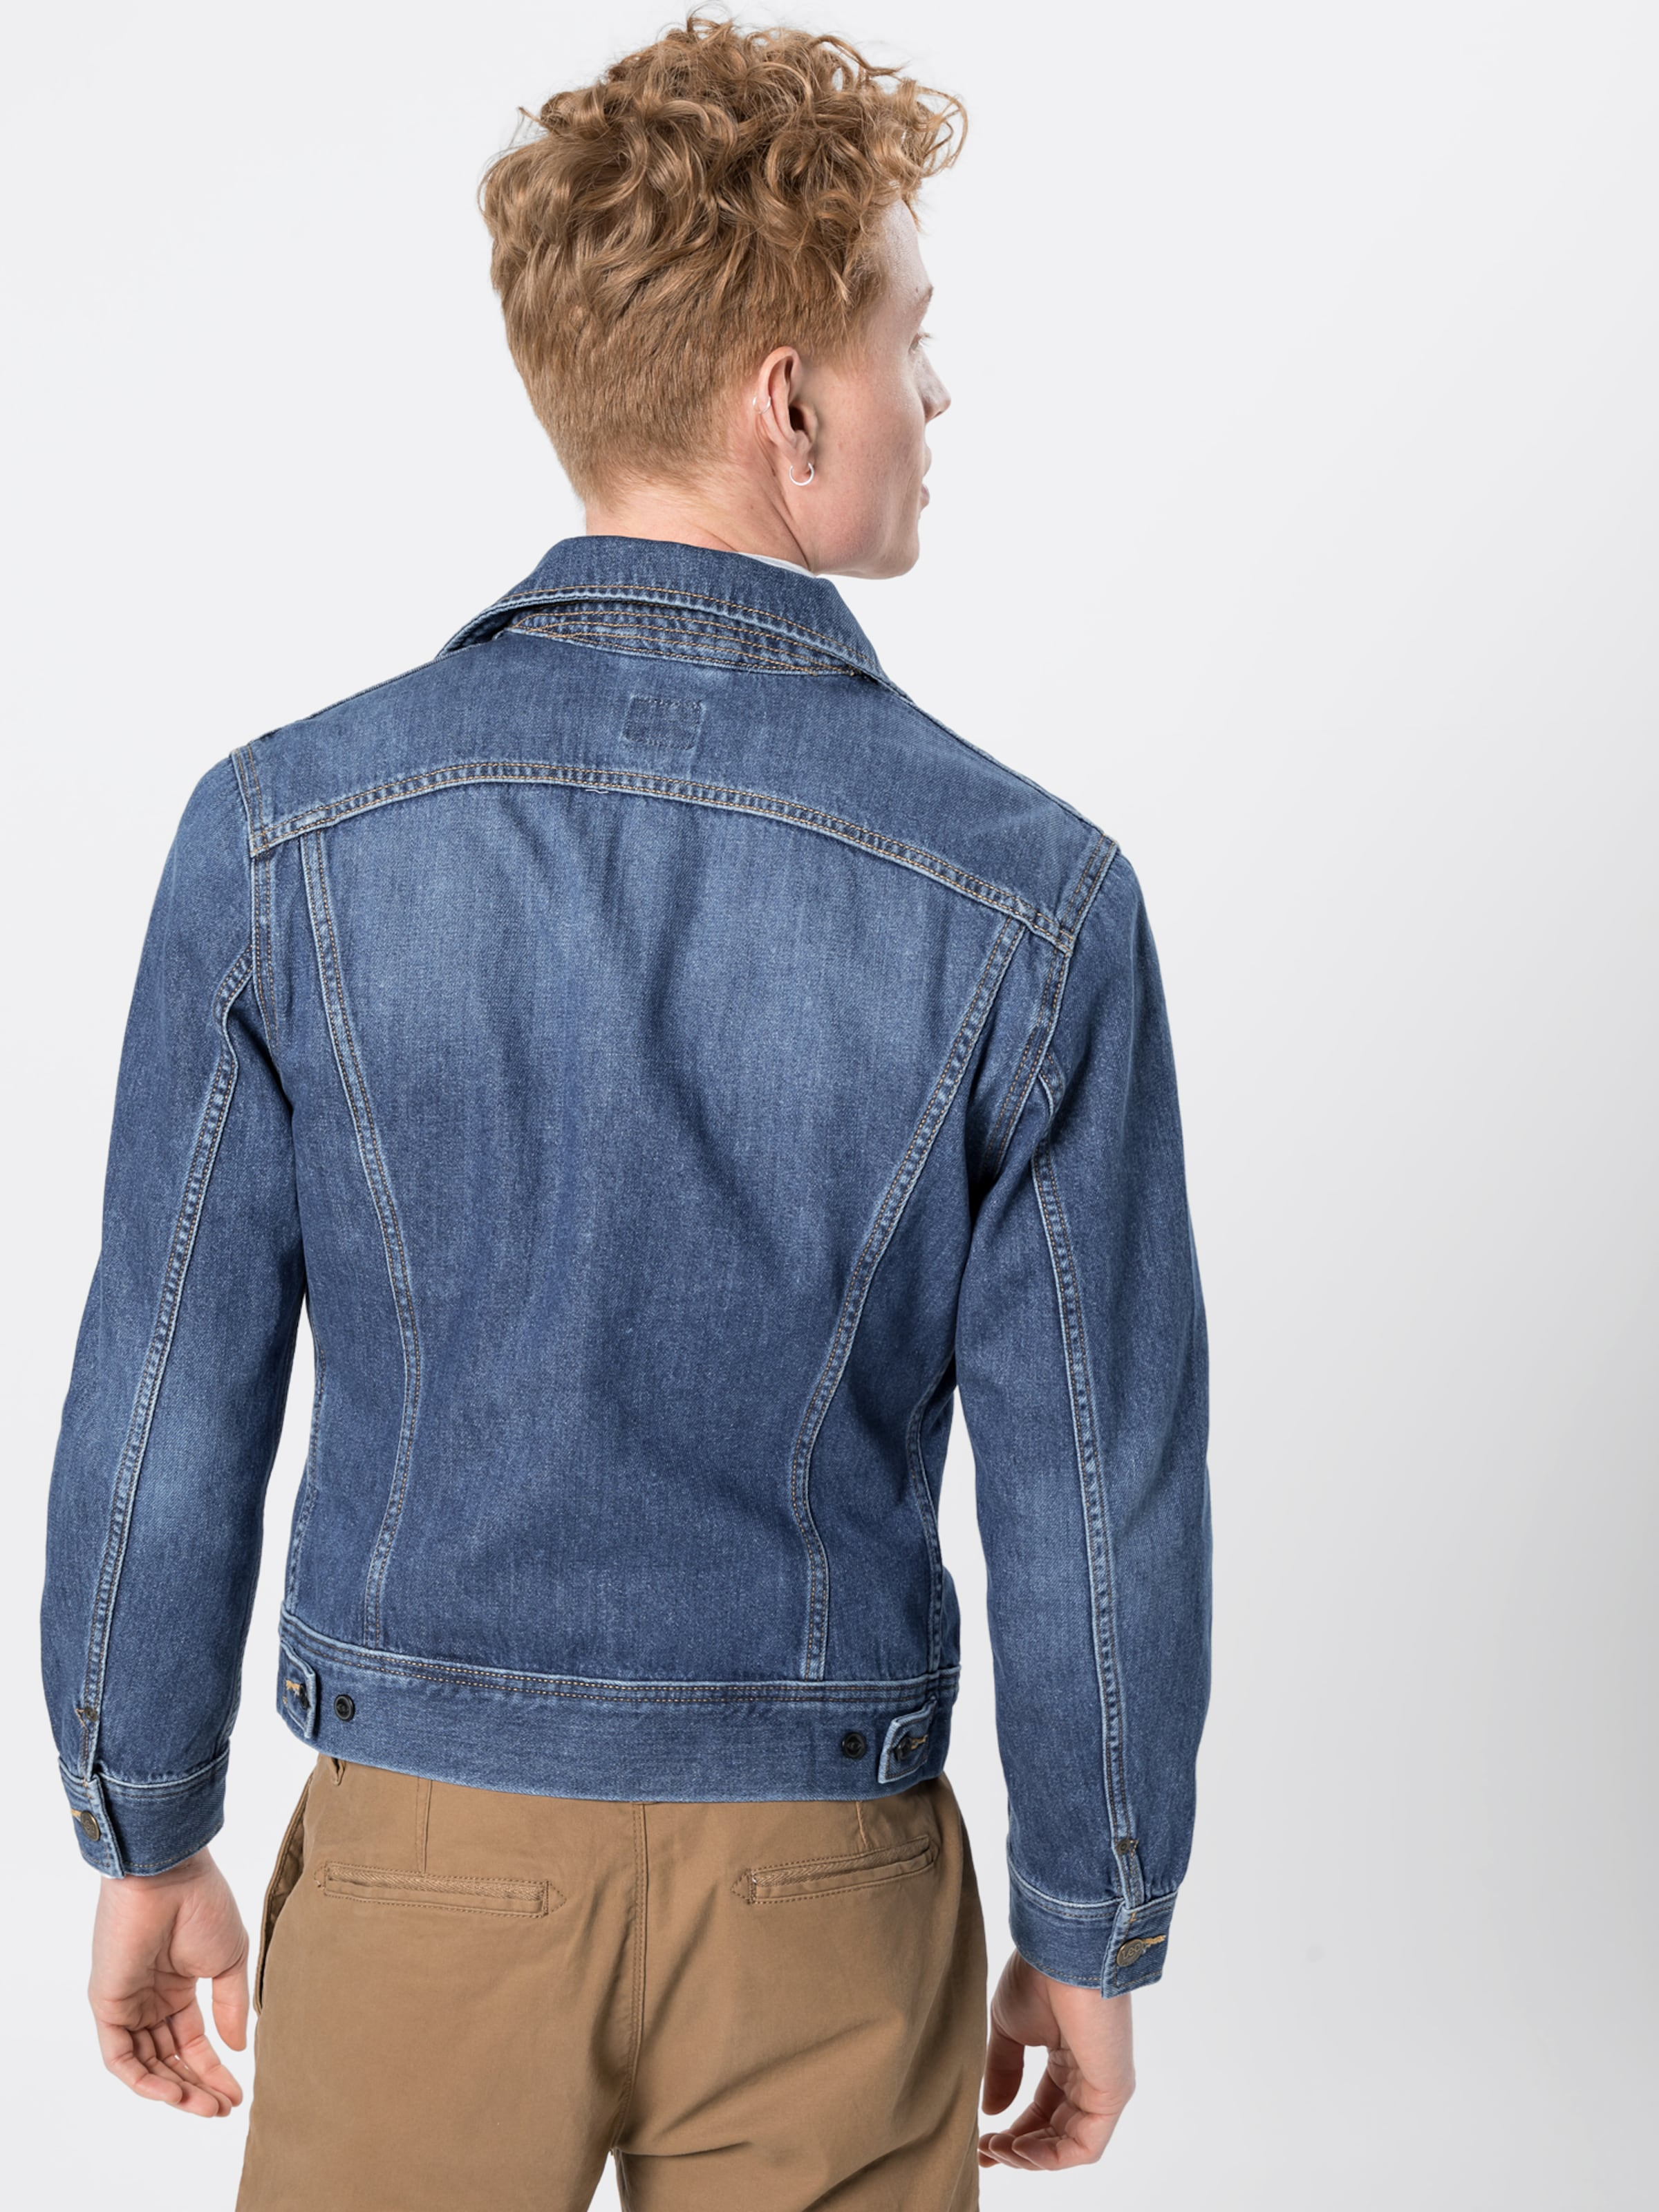 saison Flick' Bleu Denim Mi 'slim En Rider Veste Lee R34qc5ALj